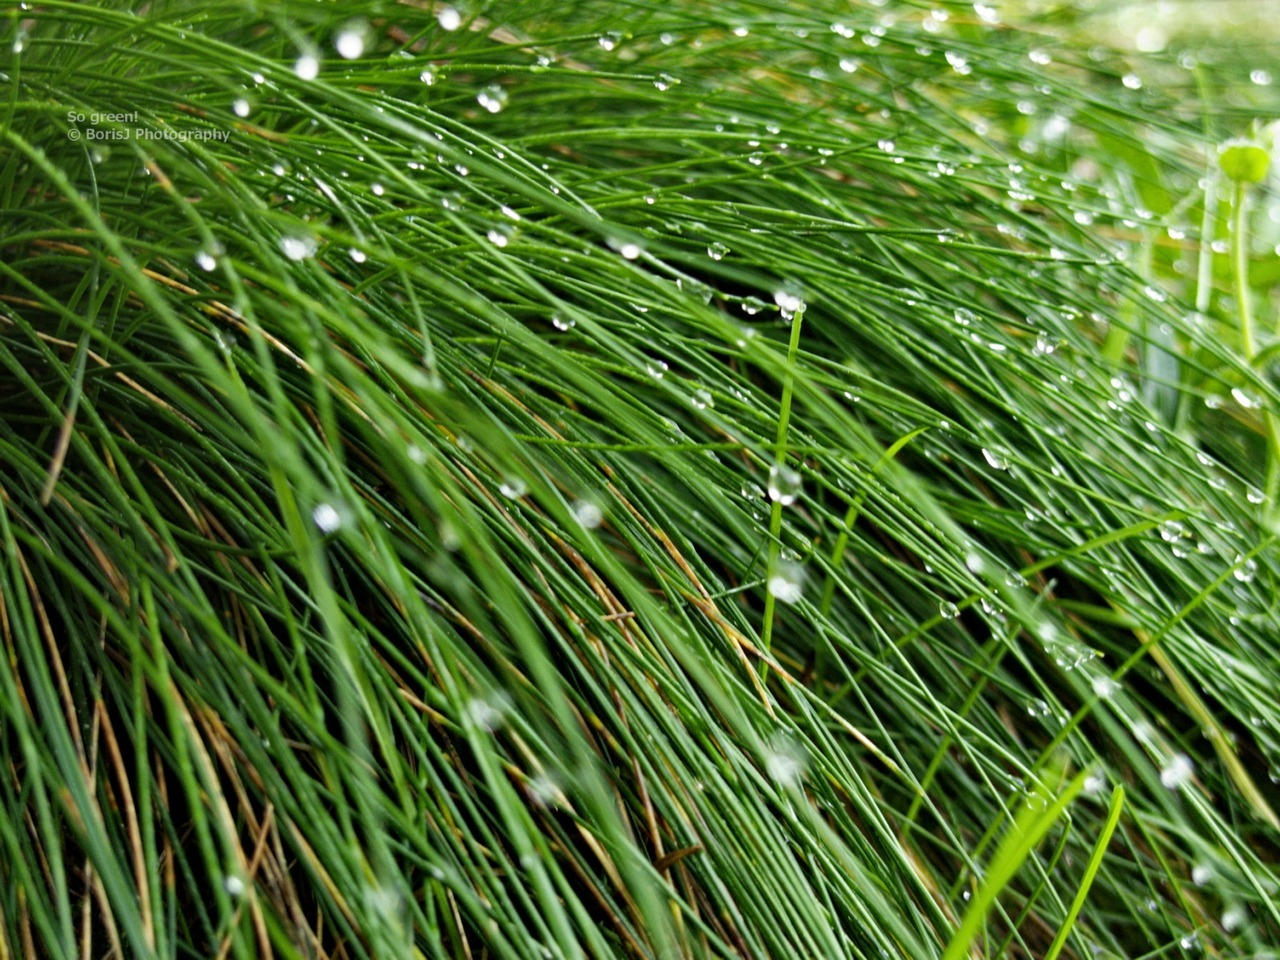 So green! Point-and-Shoot macro shot of very green Grass and shiny Water drops during a walk in the Black Forest. Panasonic Lumic LX31/125sISO 400f/2.8 Bad Herrenalb,Germany Flickr - Twitter - Facebook - Google+ - Posterous - 500px Copyright © BorisJ Photography - Boris Jusseit - all rights reserved - please do not use this image on any media without my permission.